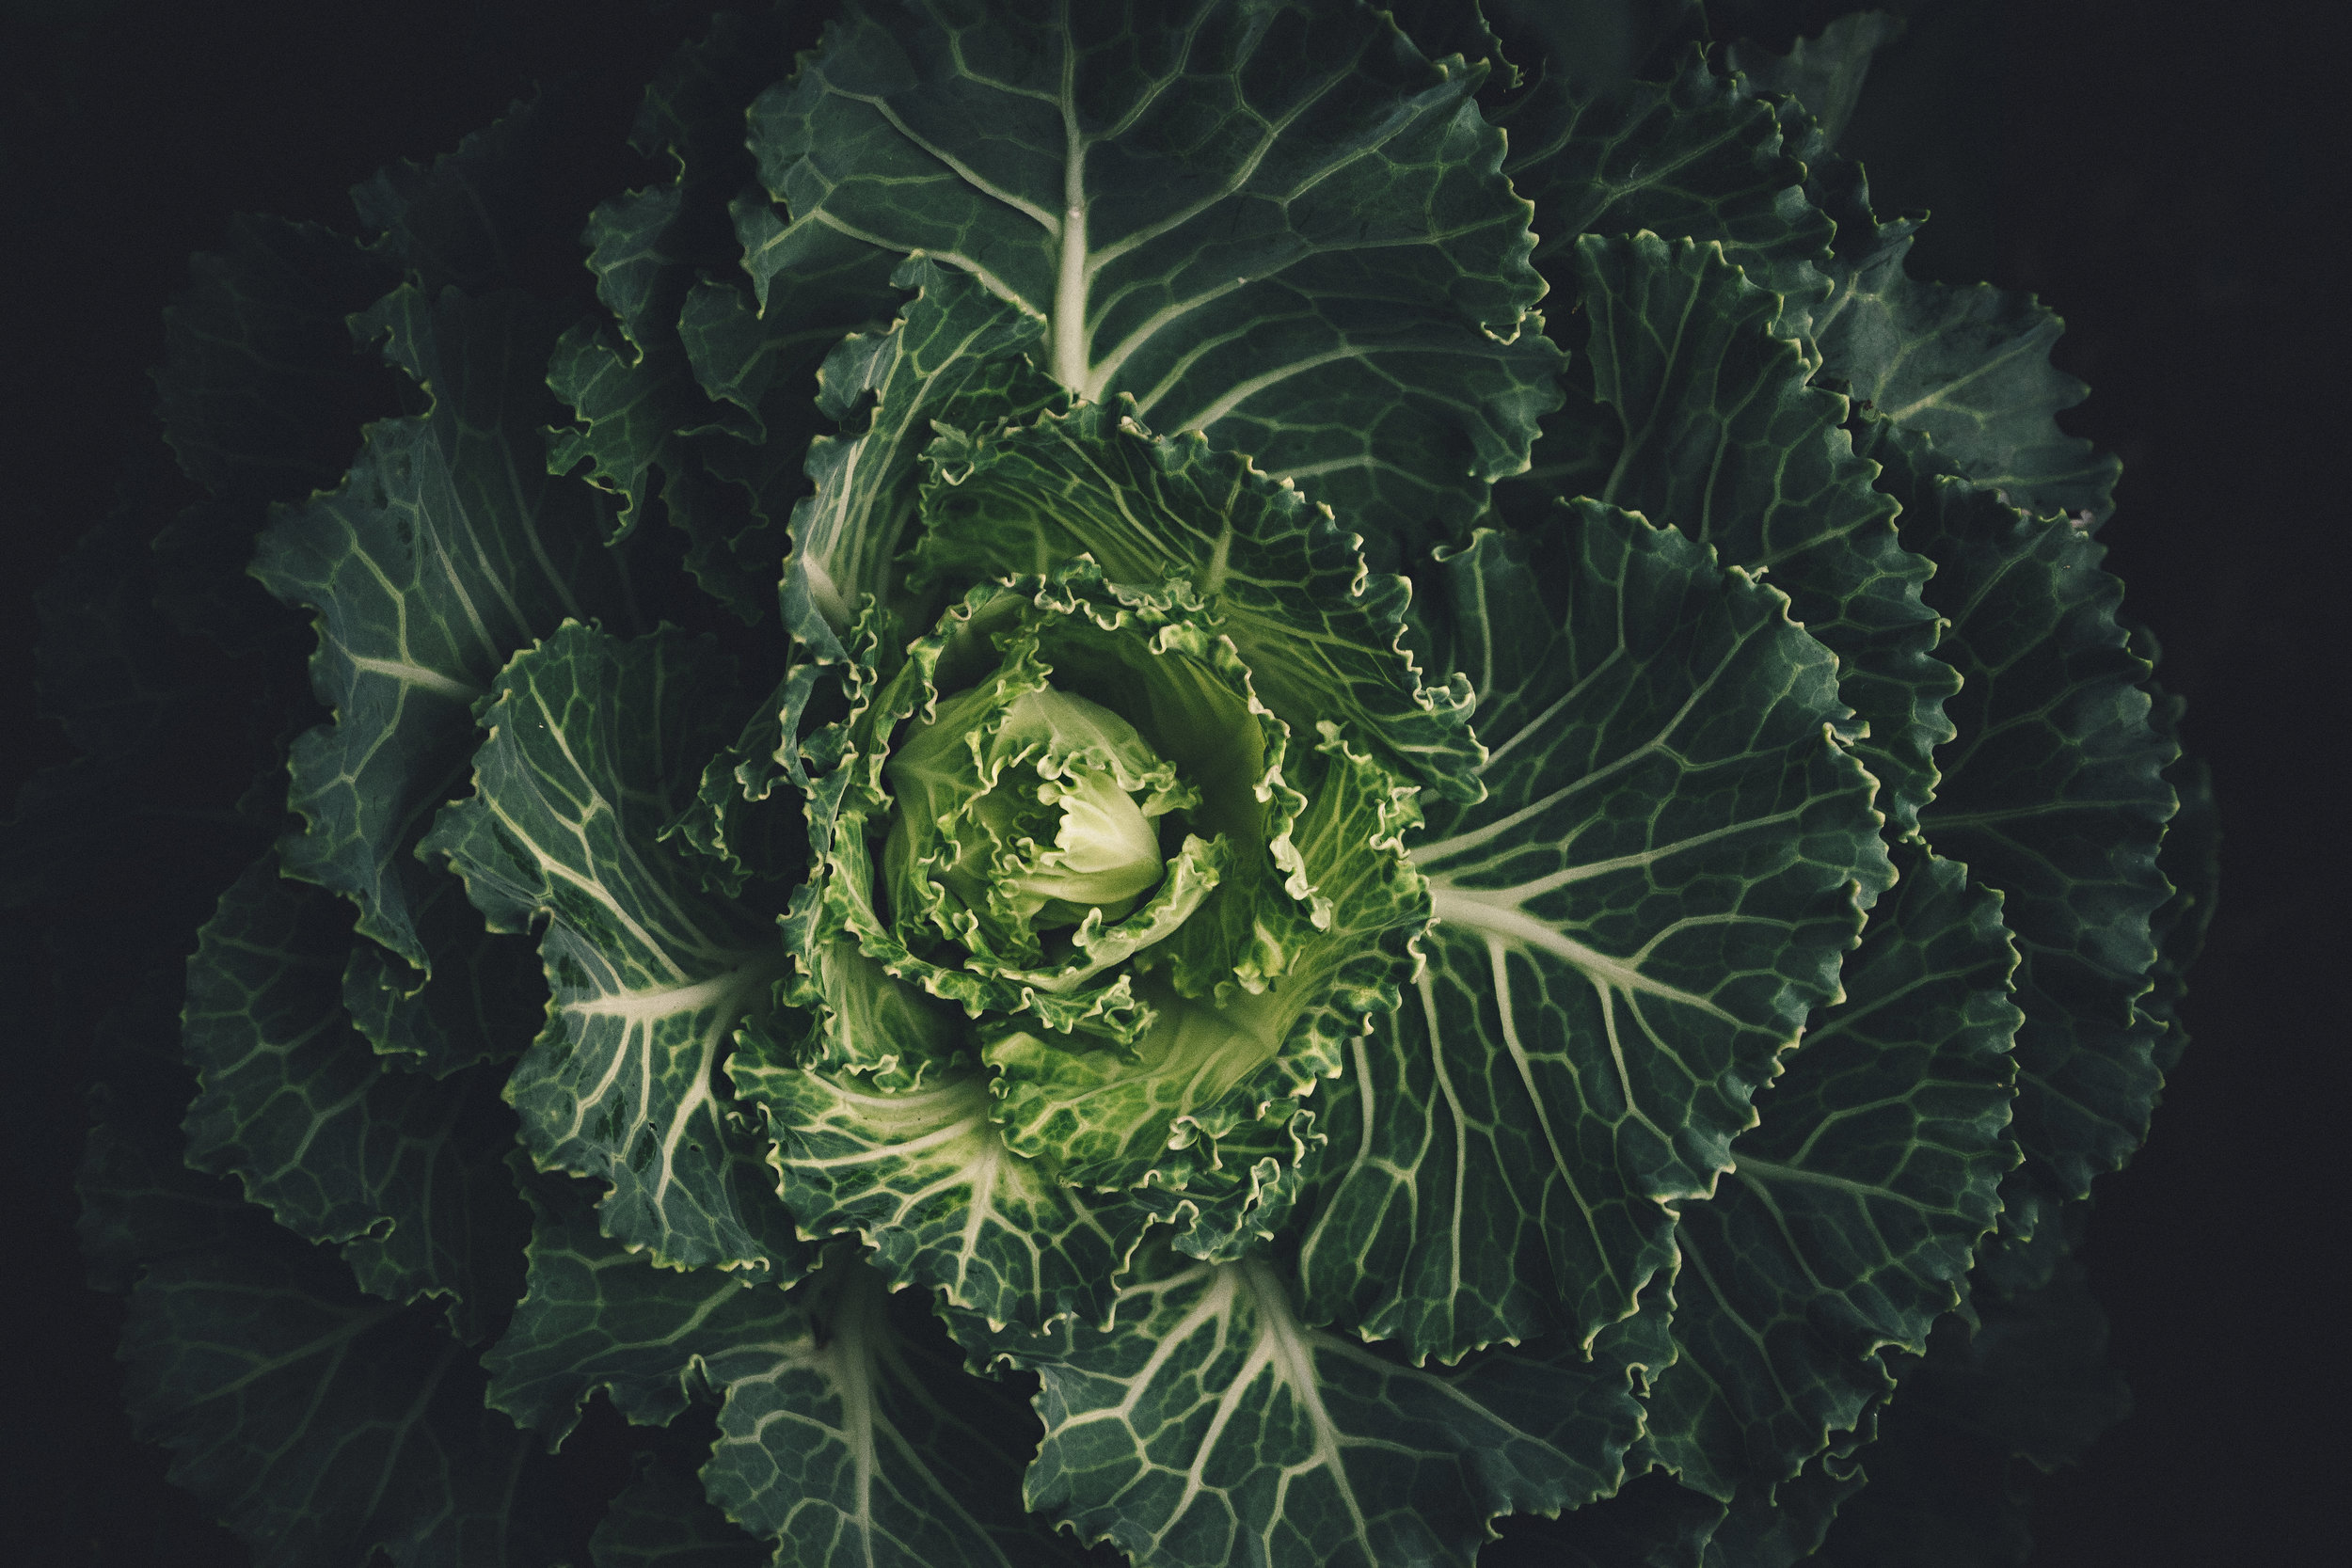 RULE 1/ - Eat plenty of fresh vegetables and fruit. Particularly leafy green veg that gives micronutrients (vitamins, minerals) to enable the body to yield energy faster.